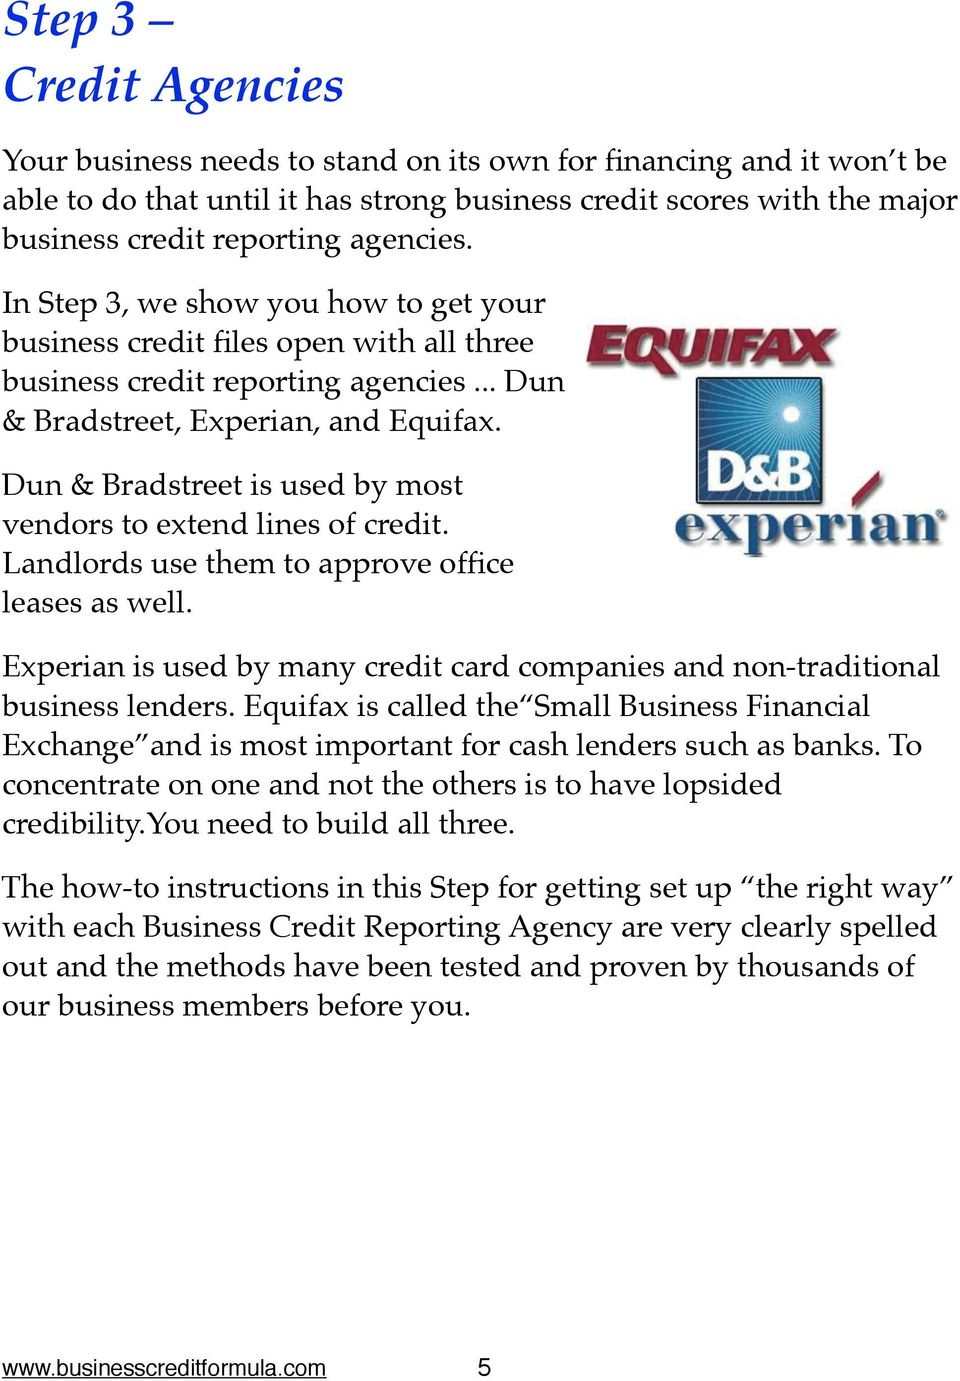 """ Dun & Bradstreet is used by most vendors to extend lines of credit. Landlords use them to approve office leases as well."